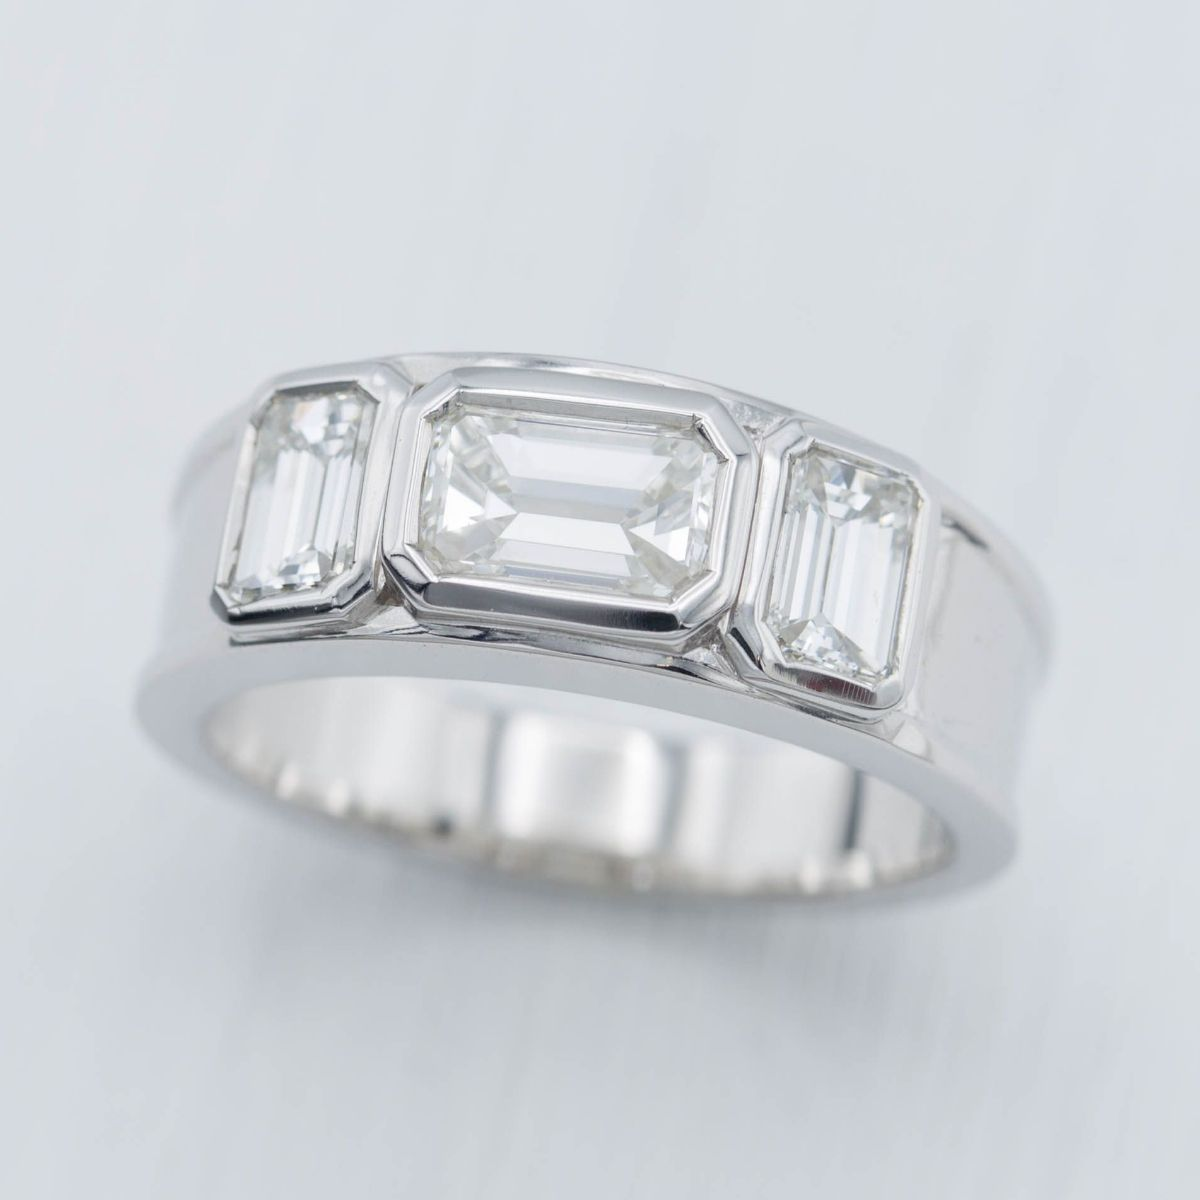 65791718c A minimal, chunky band style engagement ring. Octagonal bezel settings for  the emerald cut diamonds to reinforce the shapes.